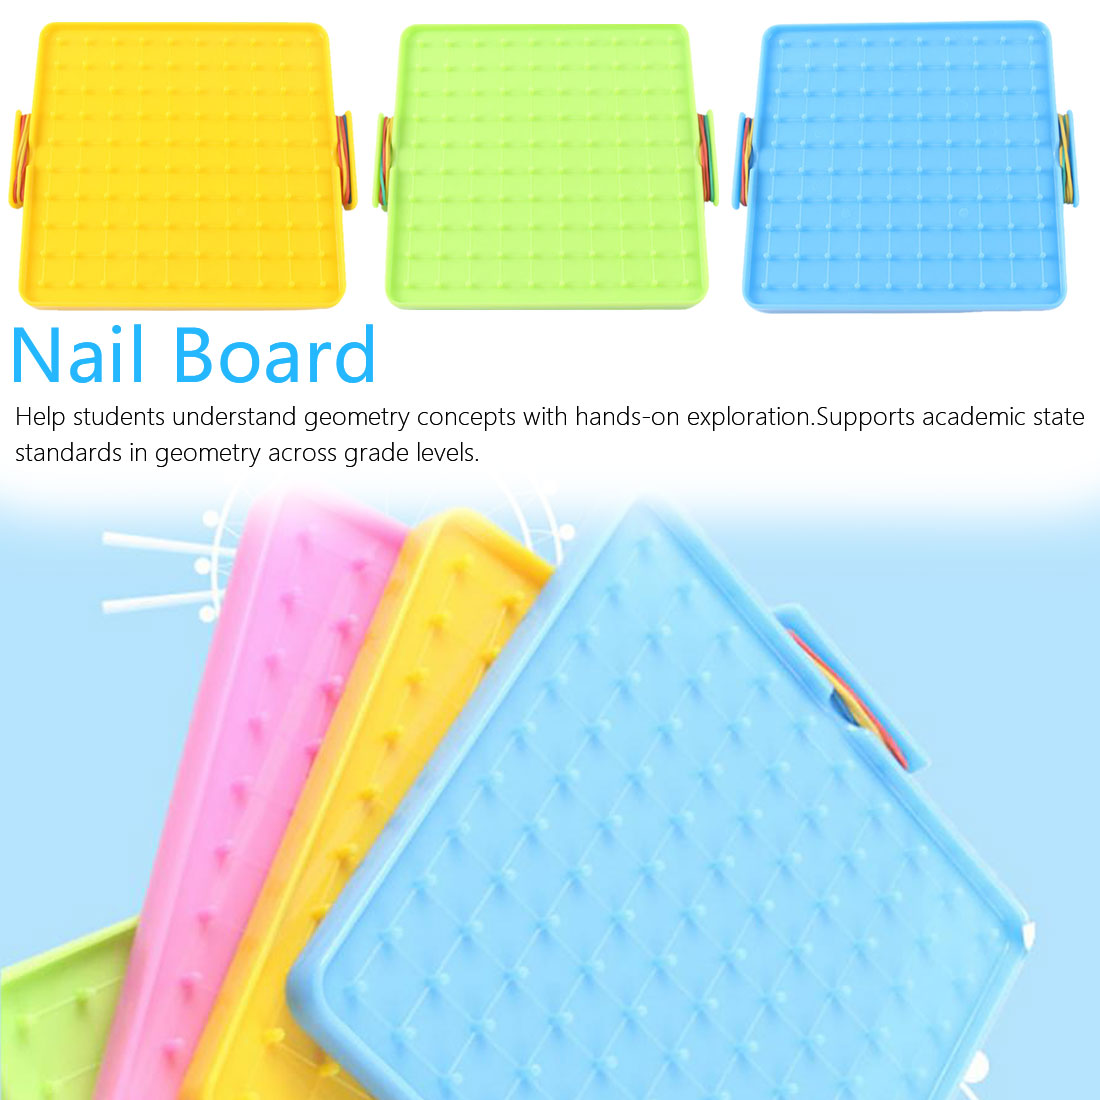 Plastic Nail Plate Primary Mathematics Nailboard Tool Geometry Demo Educational Teaching Instrument Puzzle Game Toy